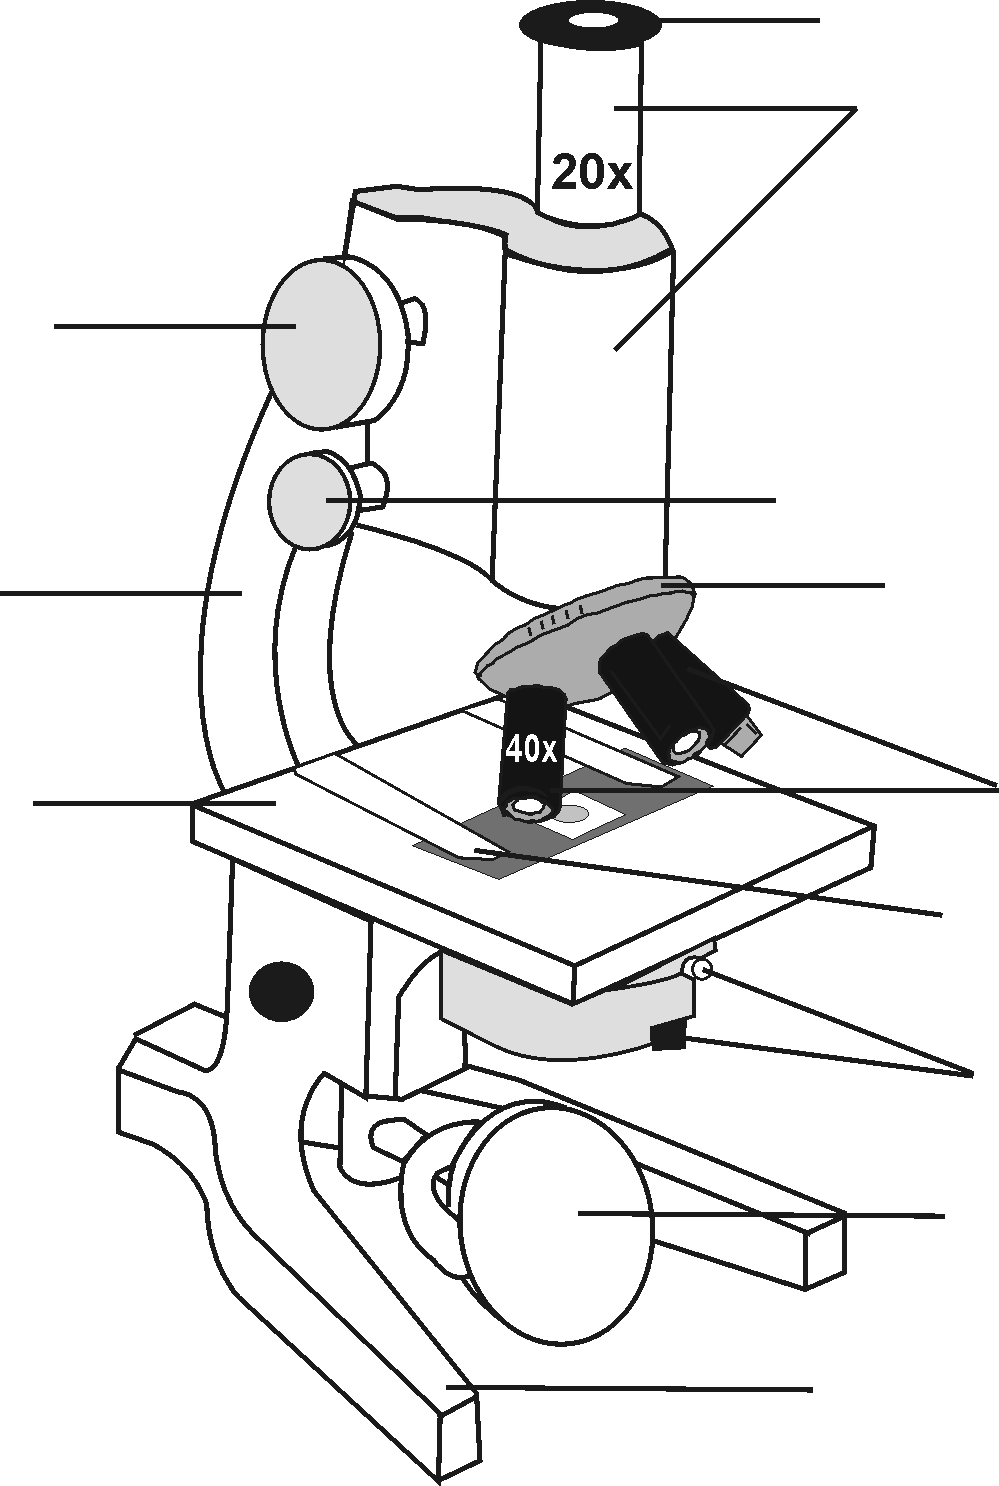 Free Microscope Drawing, Download Free Clip Art, Free Clip